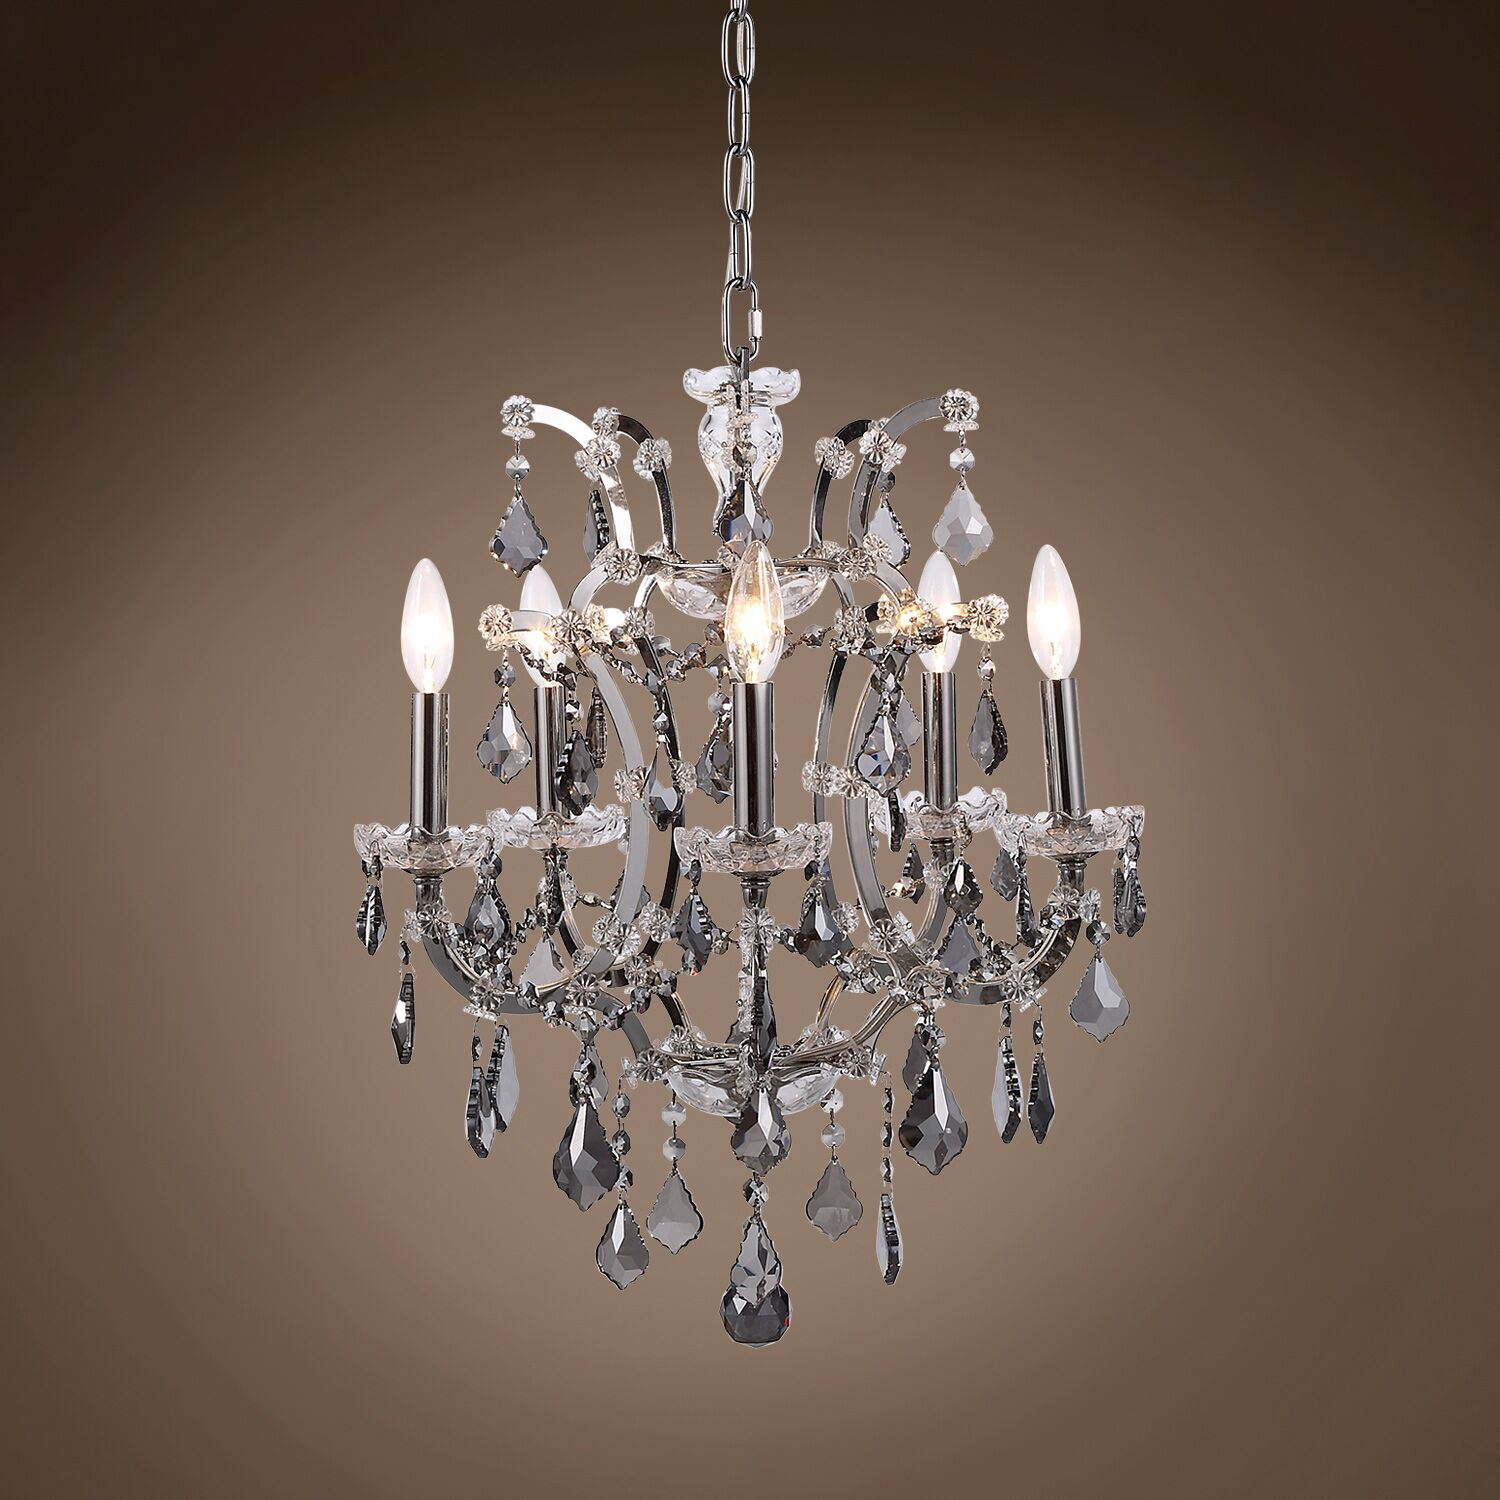 Chantrell 5-Light Chandelier Finish: Polished Nickel, Crystal Color: Smoke